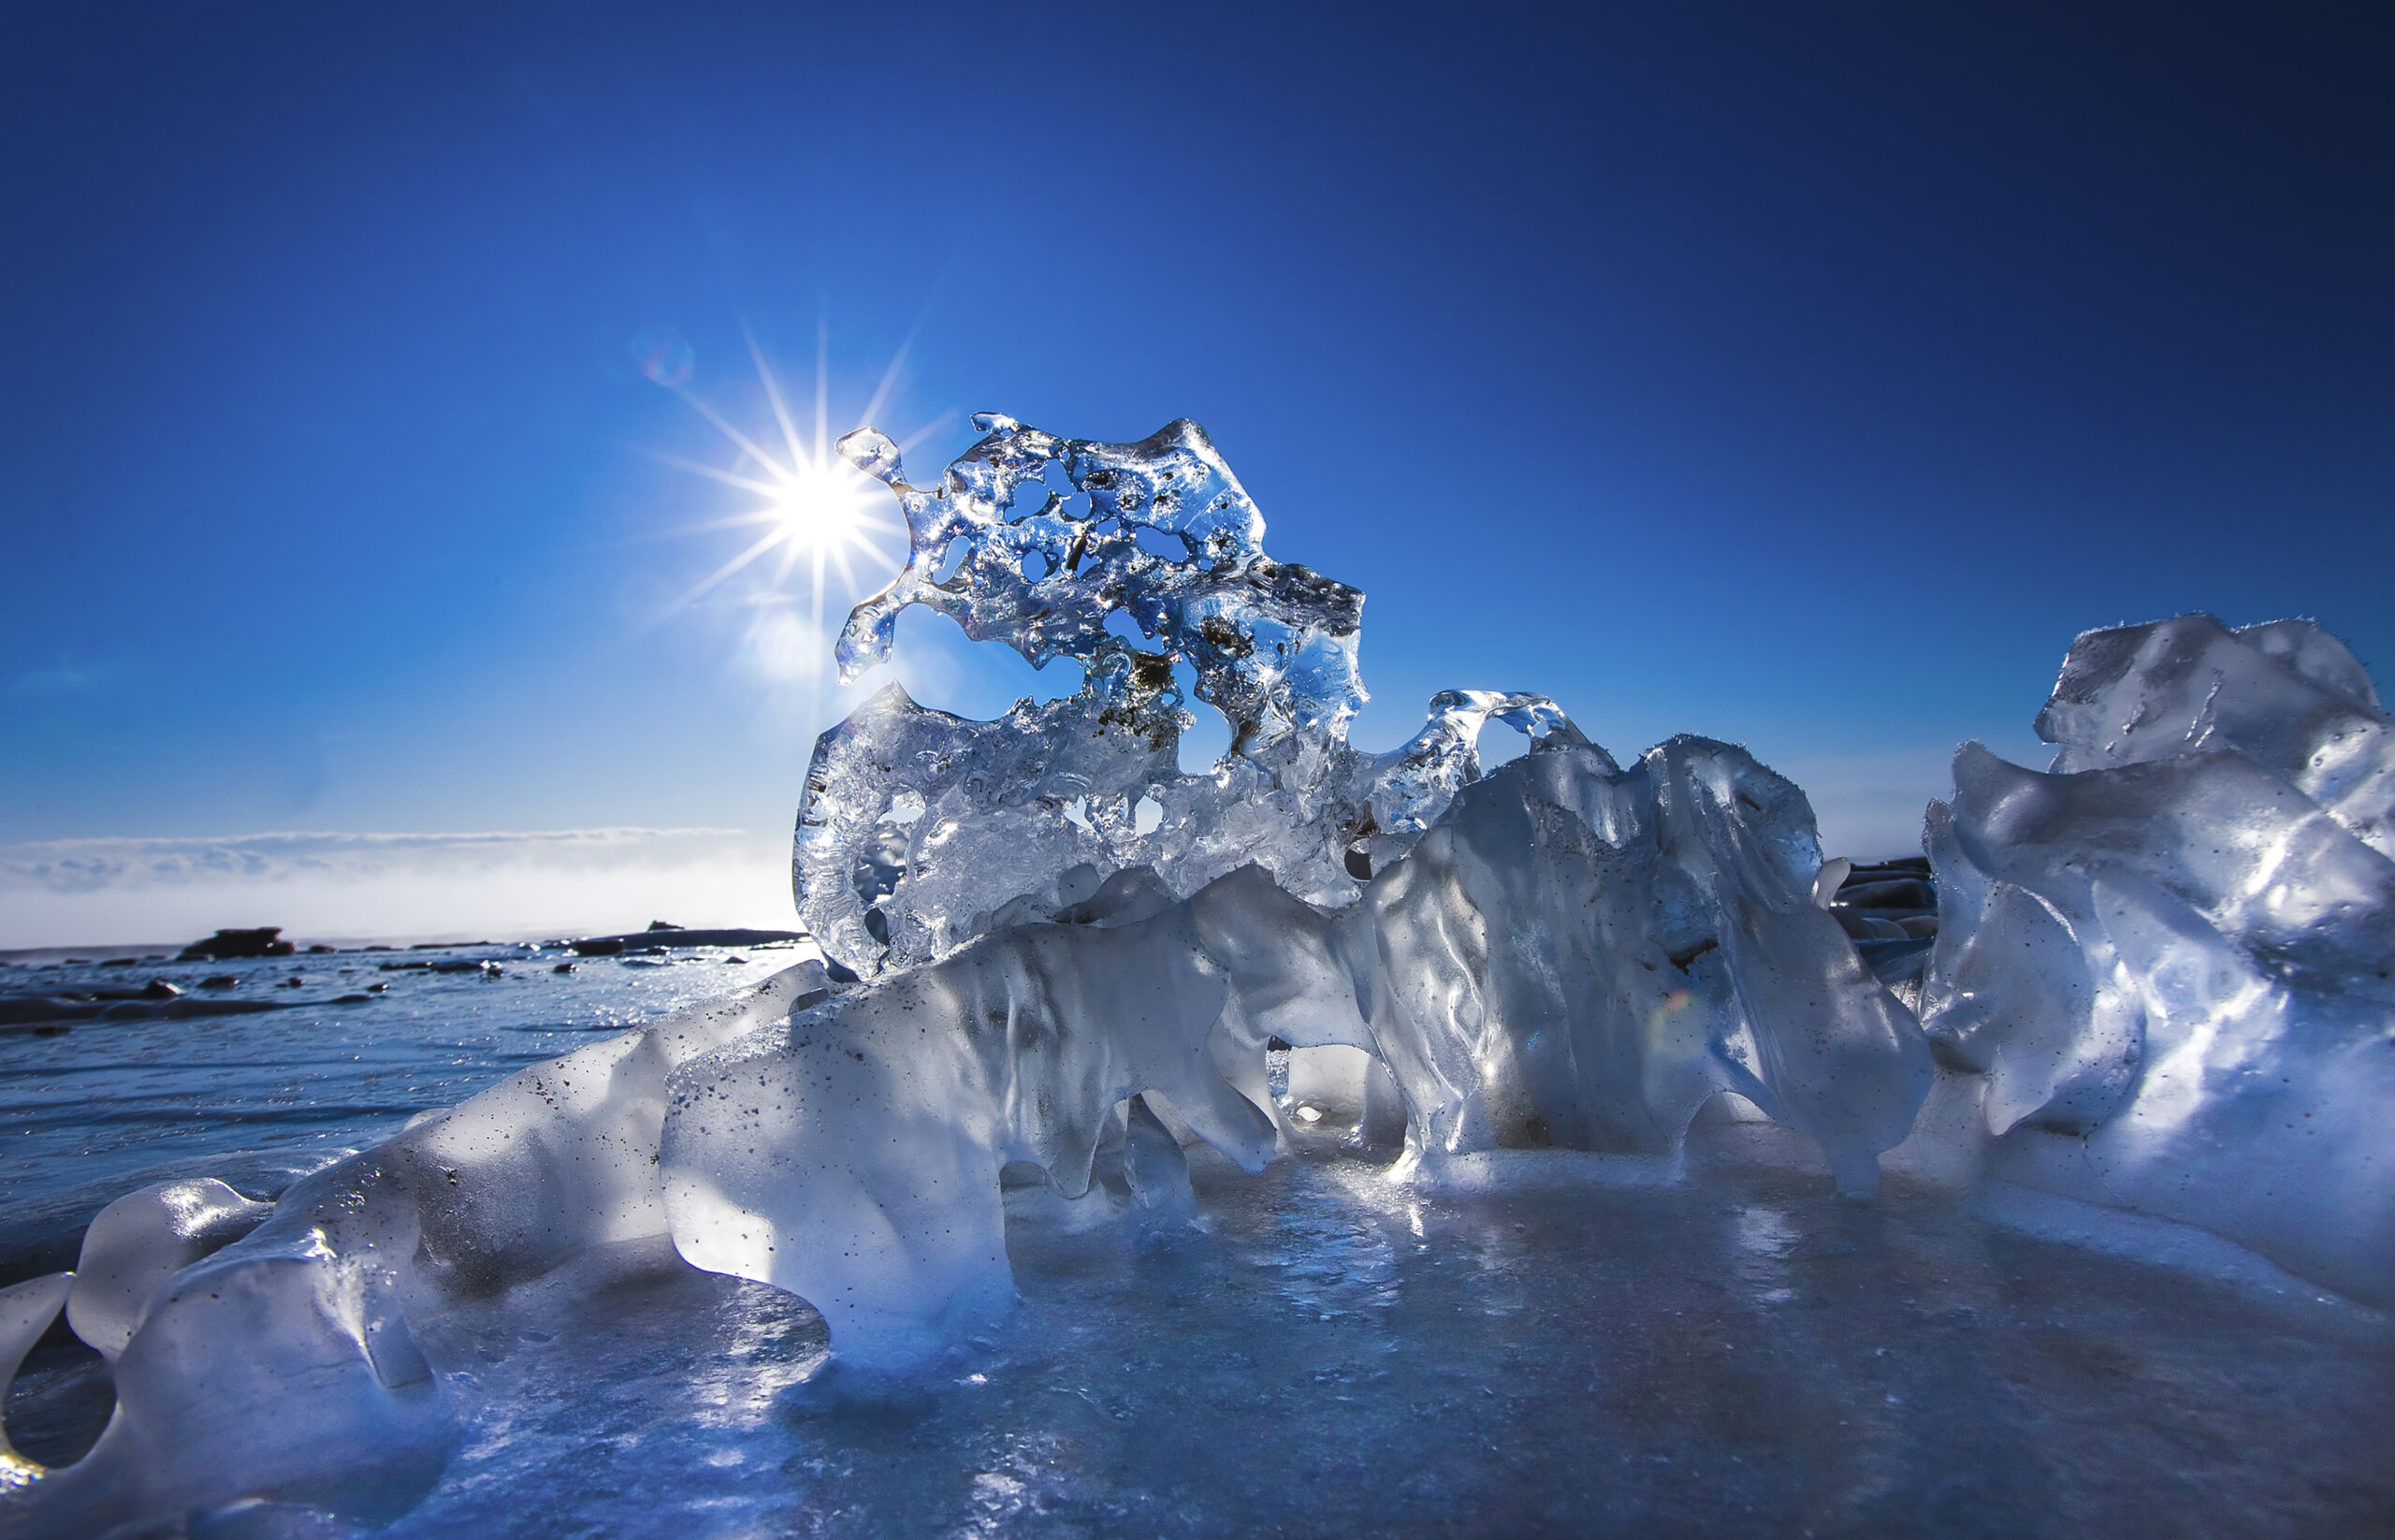 In early February, when the sun rises, the cloudless blue sky can be seen through the ice. When shooting jewelry ice, Kishimoto recommends an 11-mm ultra-wide-angle lens suitable for interior photography. ⒸKishimoto Hideo